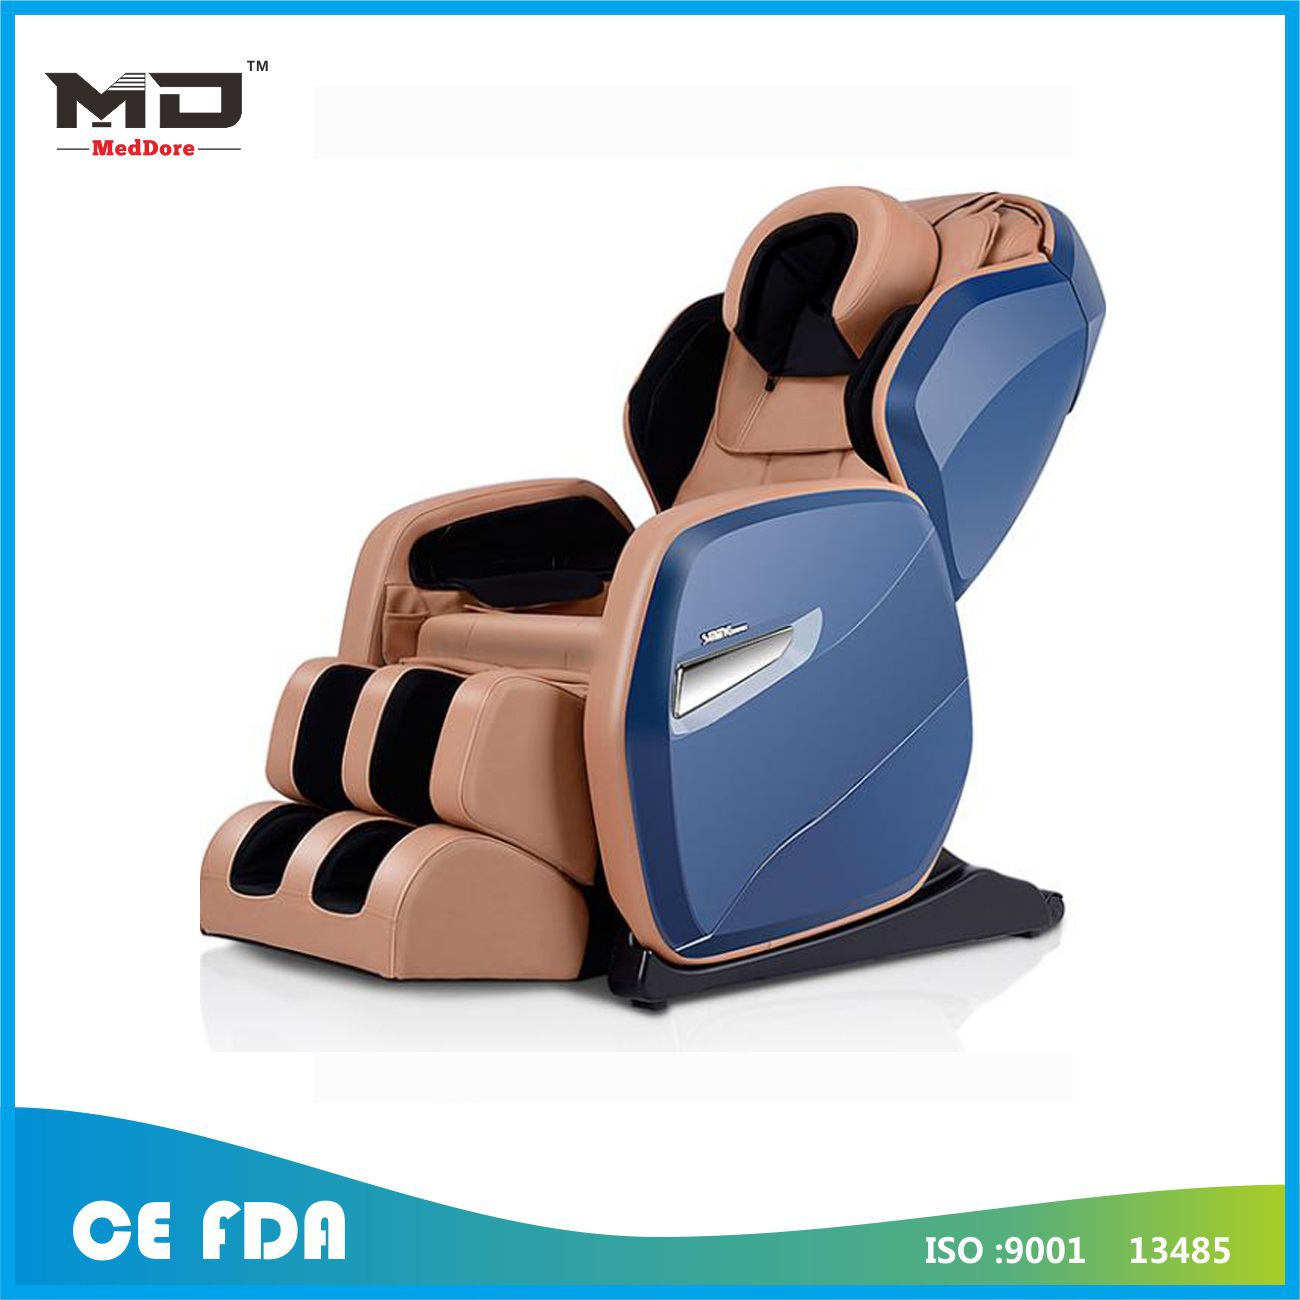 Meddore Electric Therapeutic Bodycare Massage Chair Massage Chair